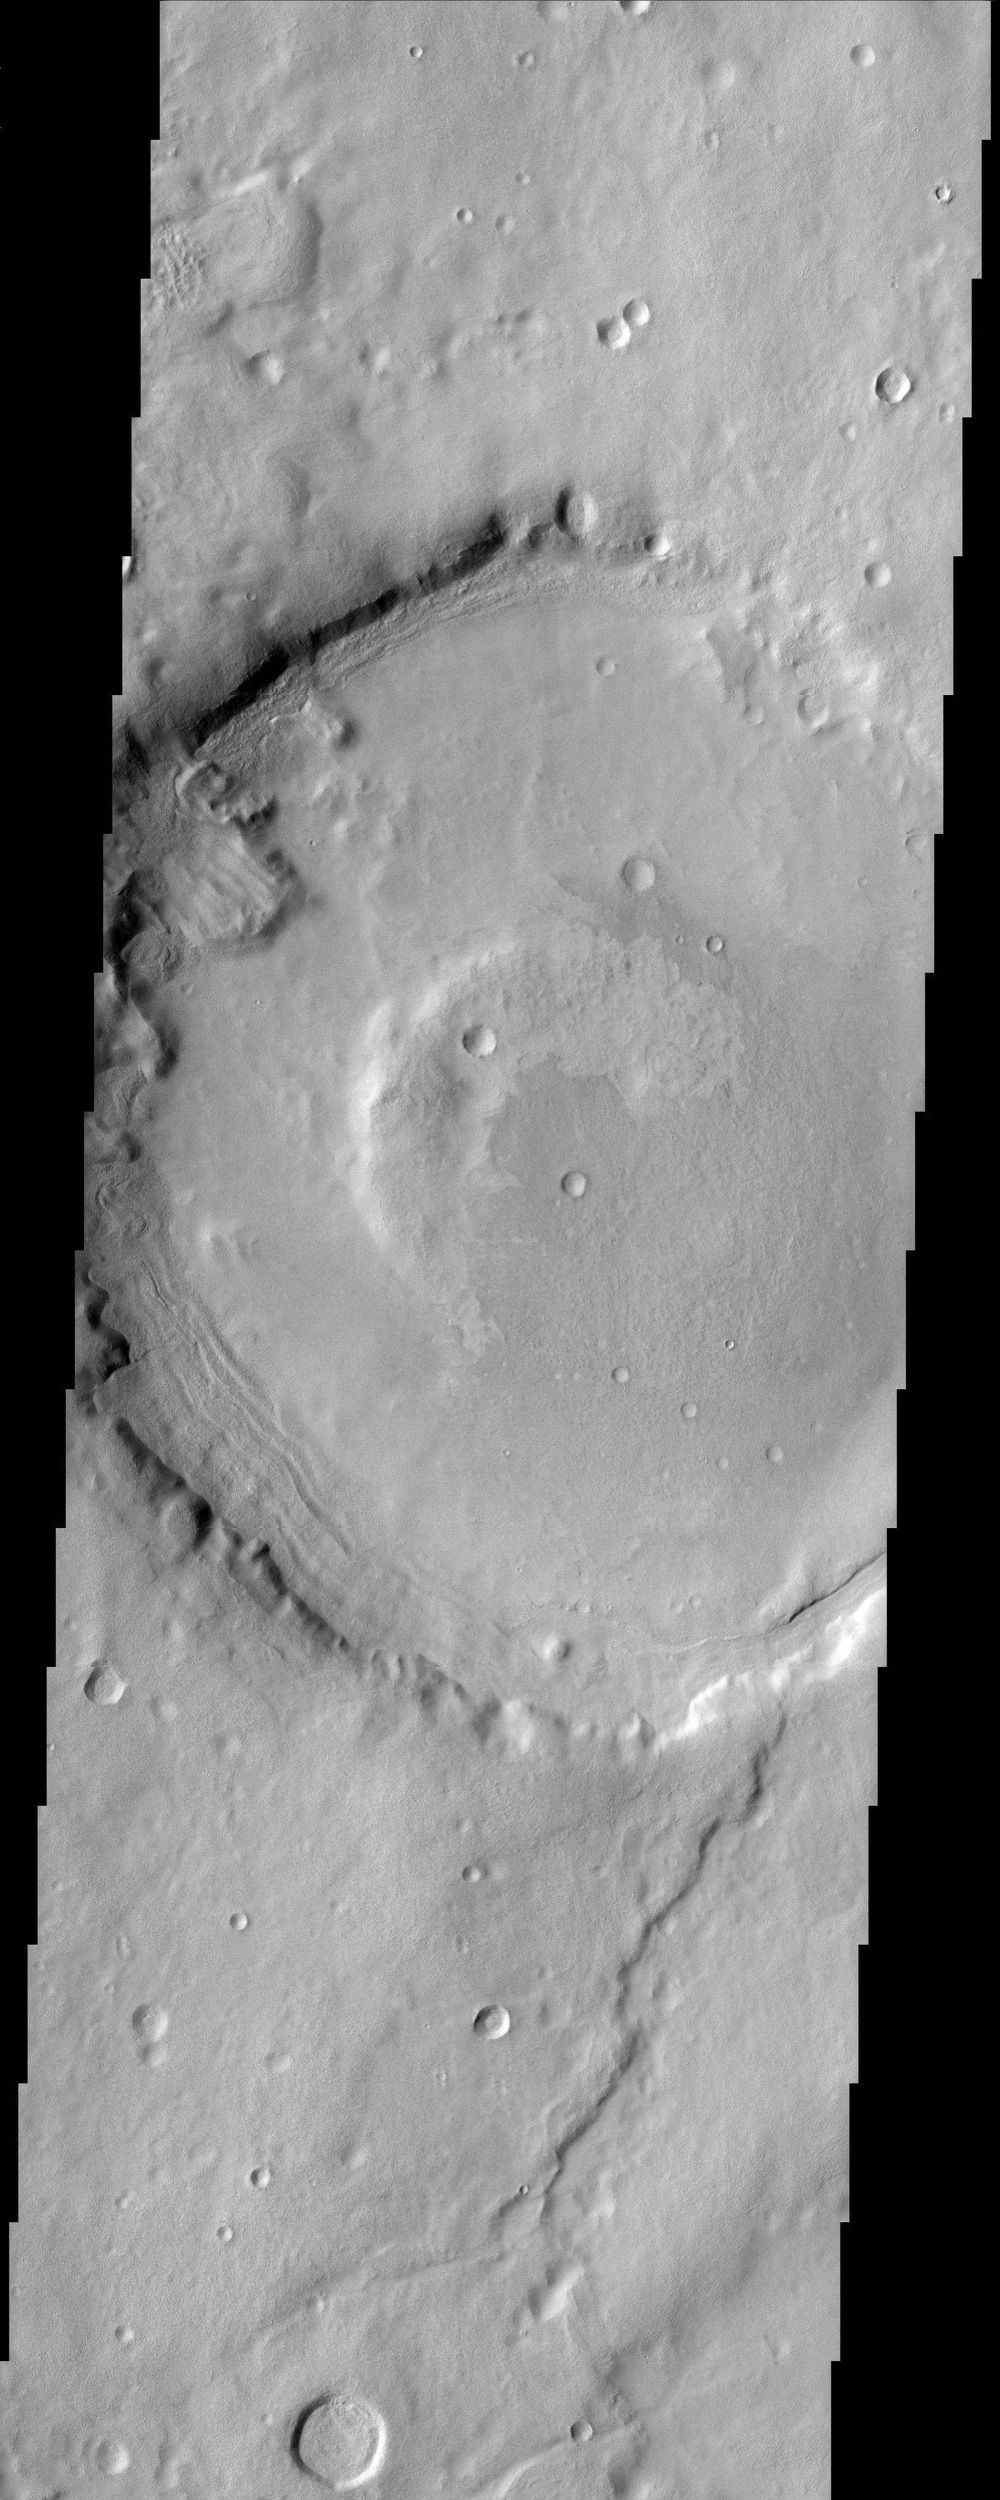 The impact crater in this NASA Mars Odyssey image is a model illustration of the effects of erosion on Mars. The degraded crater rim and several landslides observed in crater walls are evidence of the mass wasting of materials.